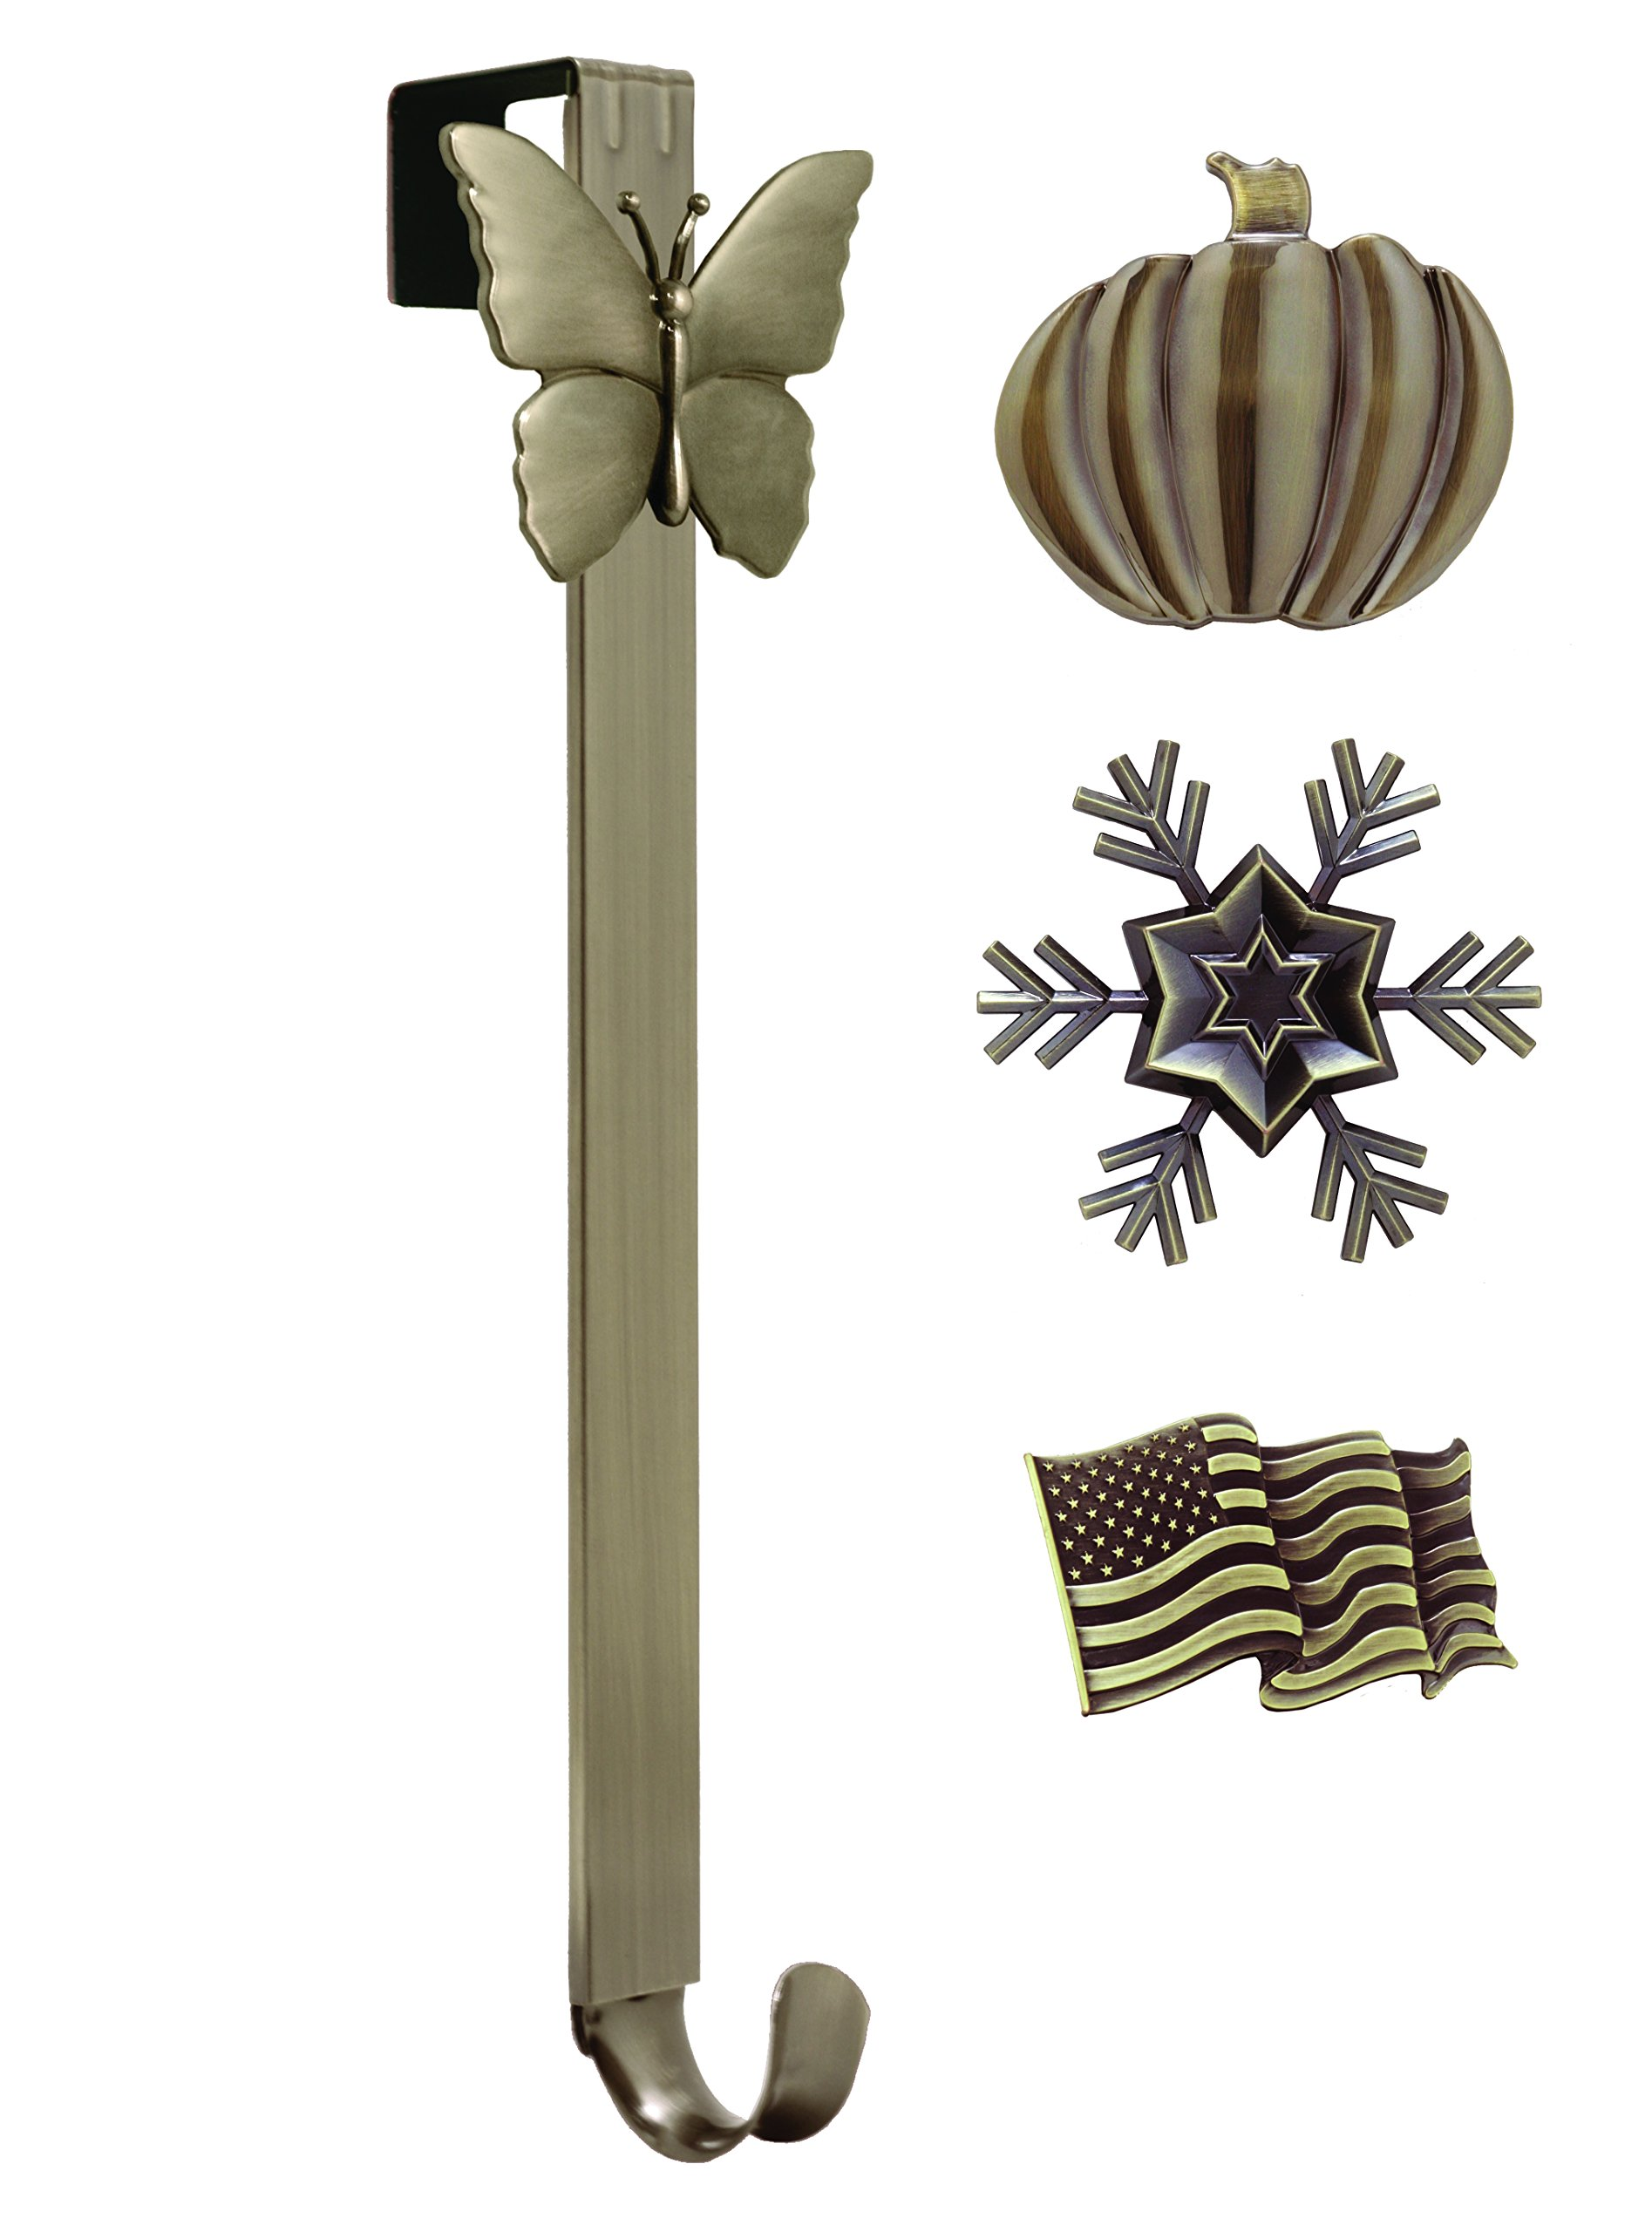 Adjustable Length Wreath Hanger with Interchangeable Icons (4 Wreath Hangers in 1) (Oil-Rubbed Bronze-Flag/Snowflake/Butterfly/Pumpkin) by Haute Decor